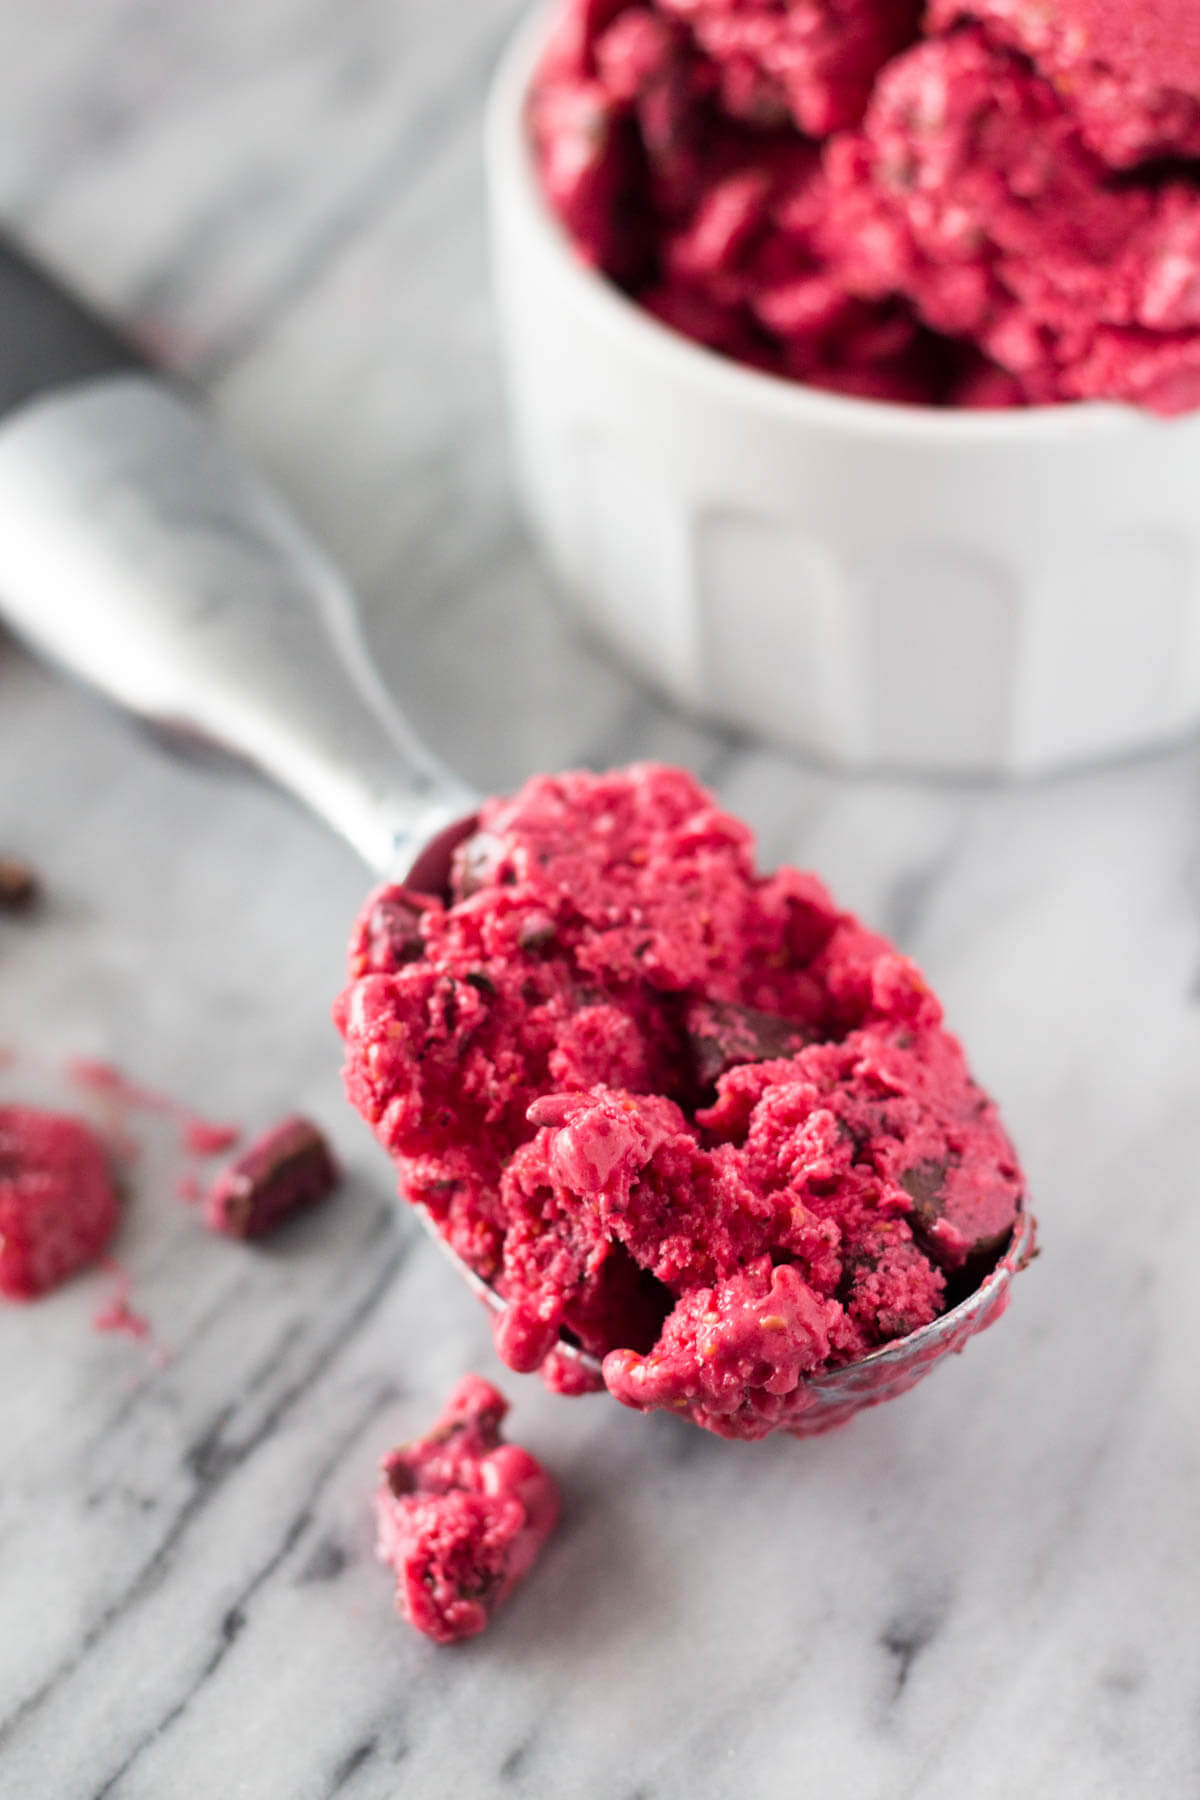 Cold, creamy Dark Chocolate Raspberry Frozen Yogurt. With no refined sugars & made without an ice cream maker, this no-churn frozen yogurt is the perfect way to cool off!